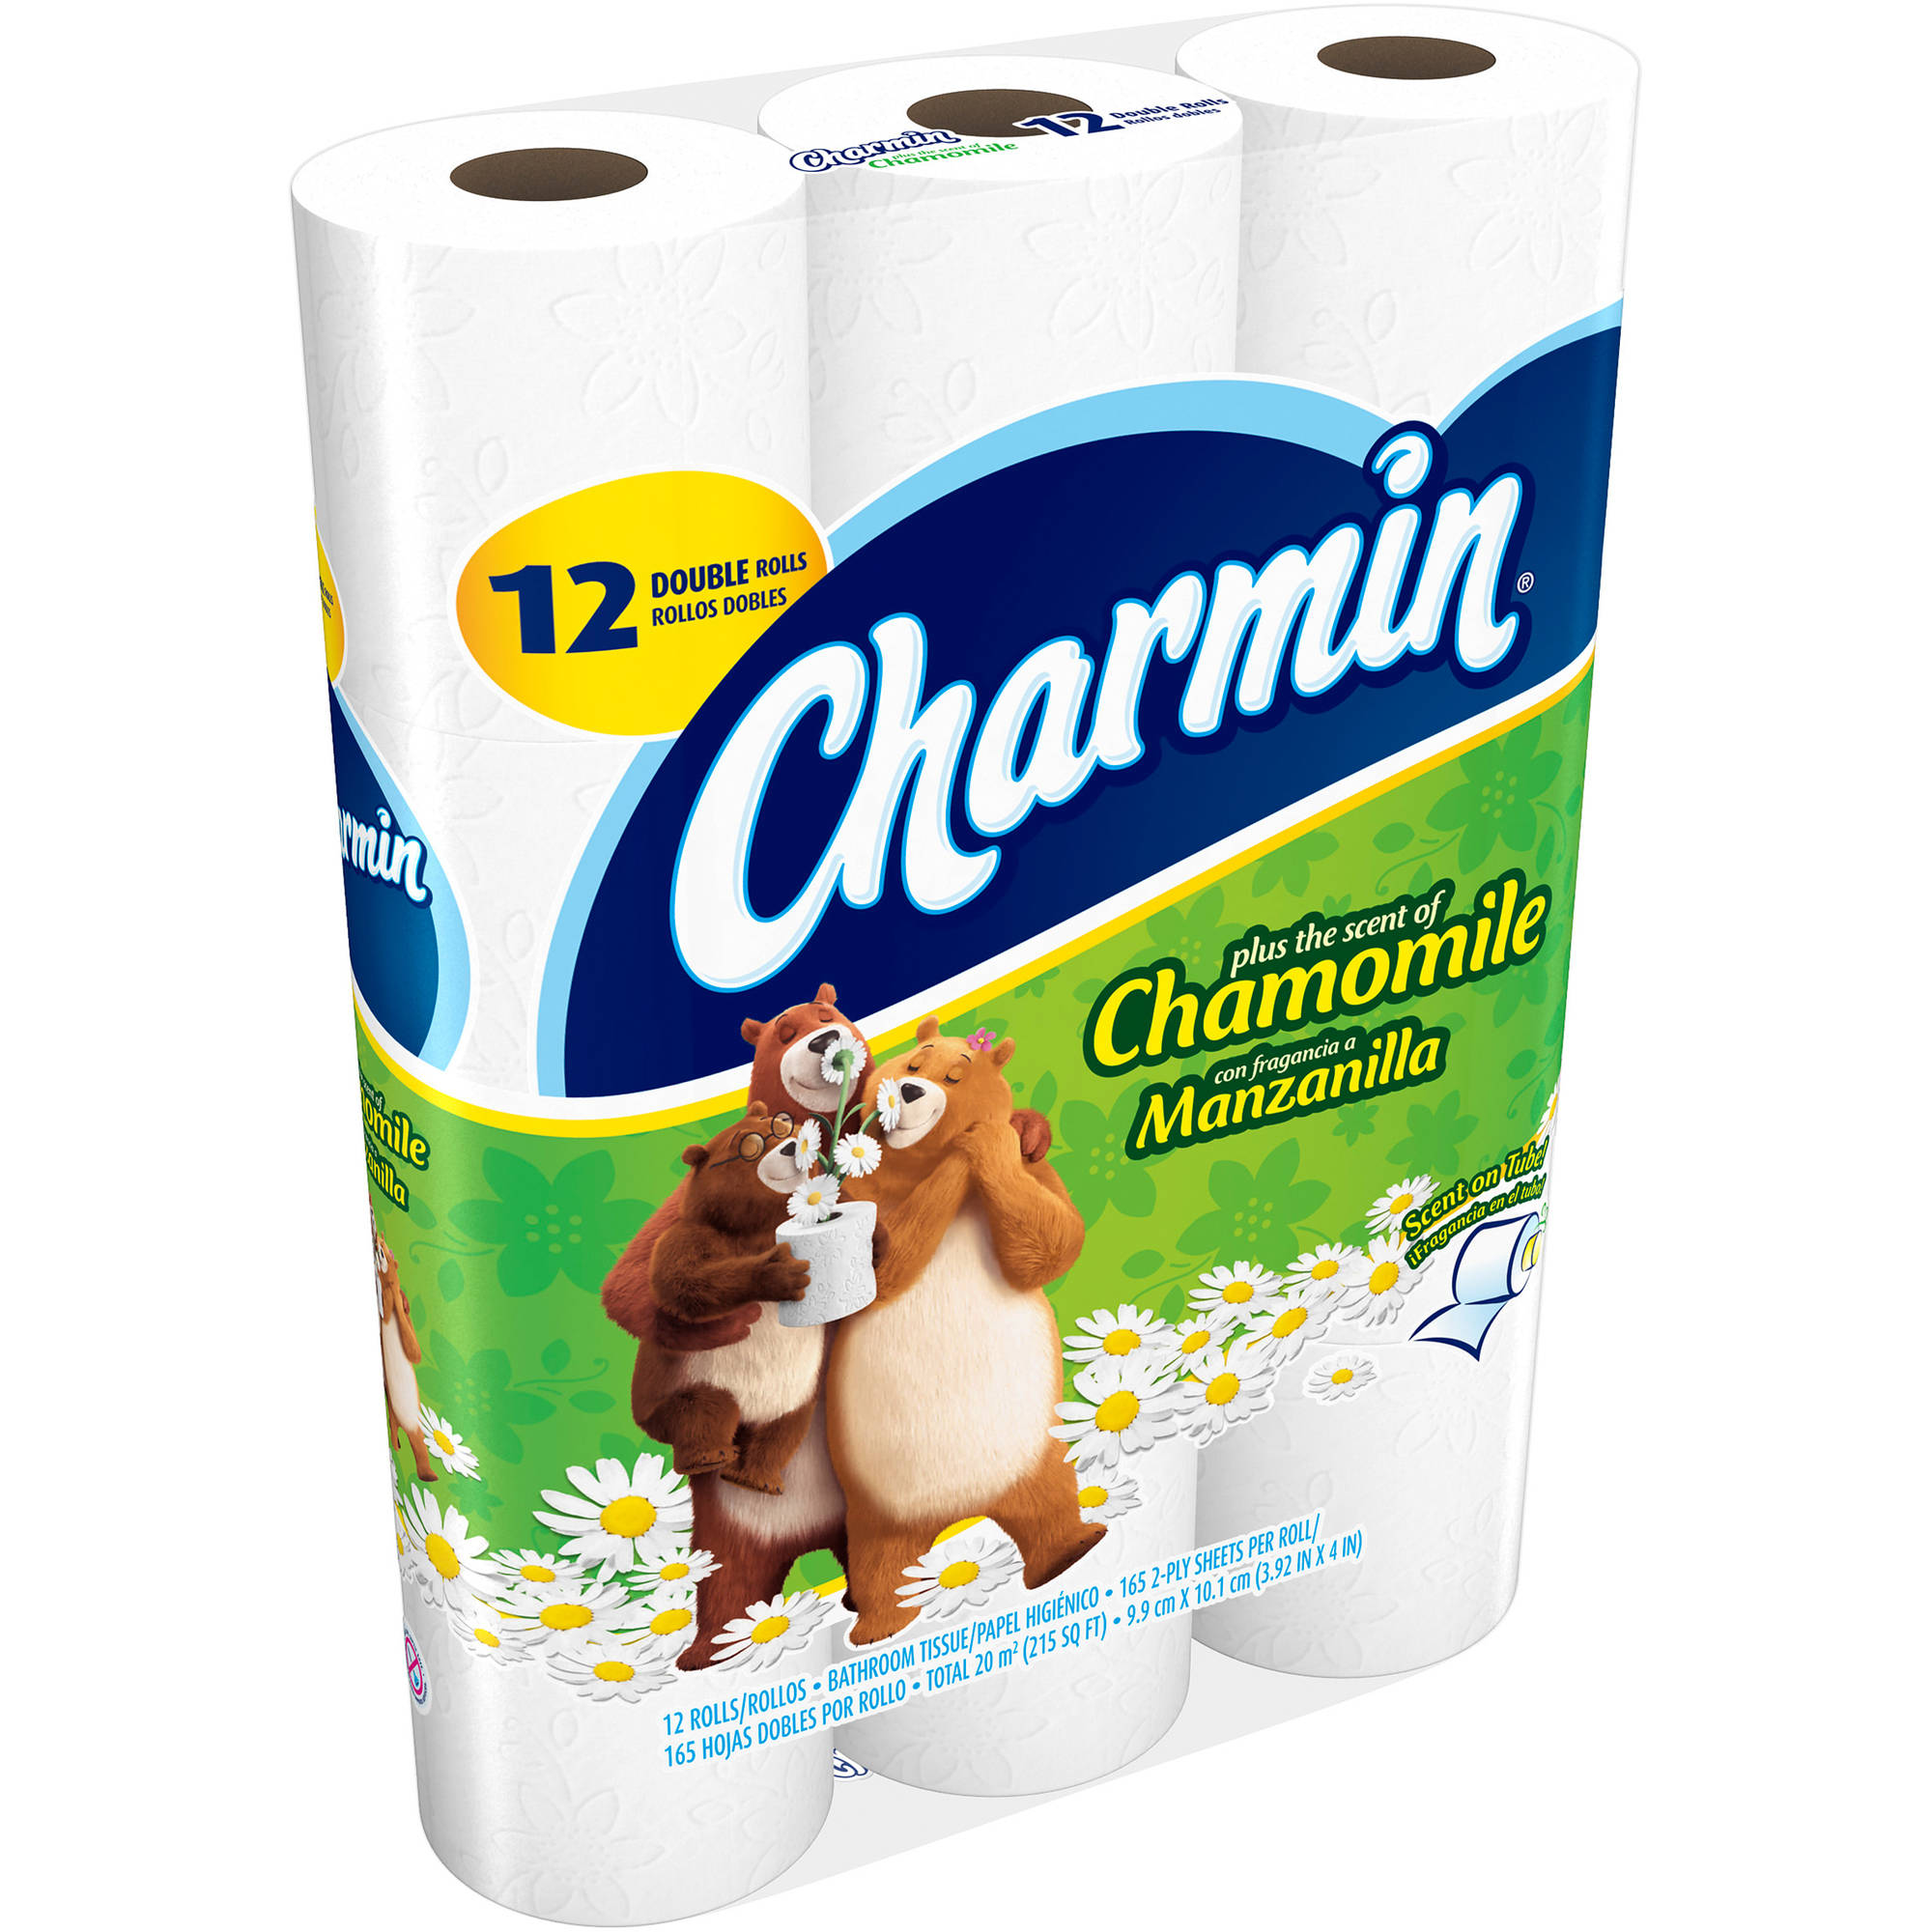 Charmin Plus the Scent of Chamomile Double Roll Bathroom Tissue, 12 rolls